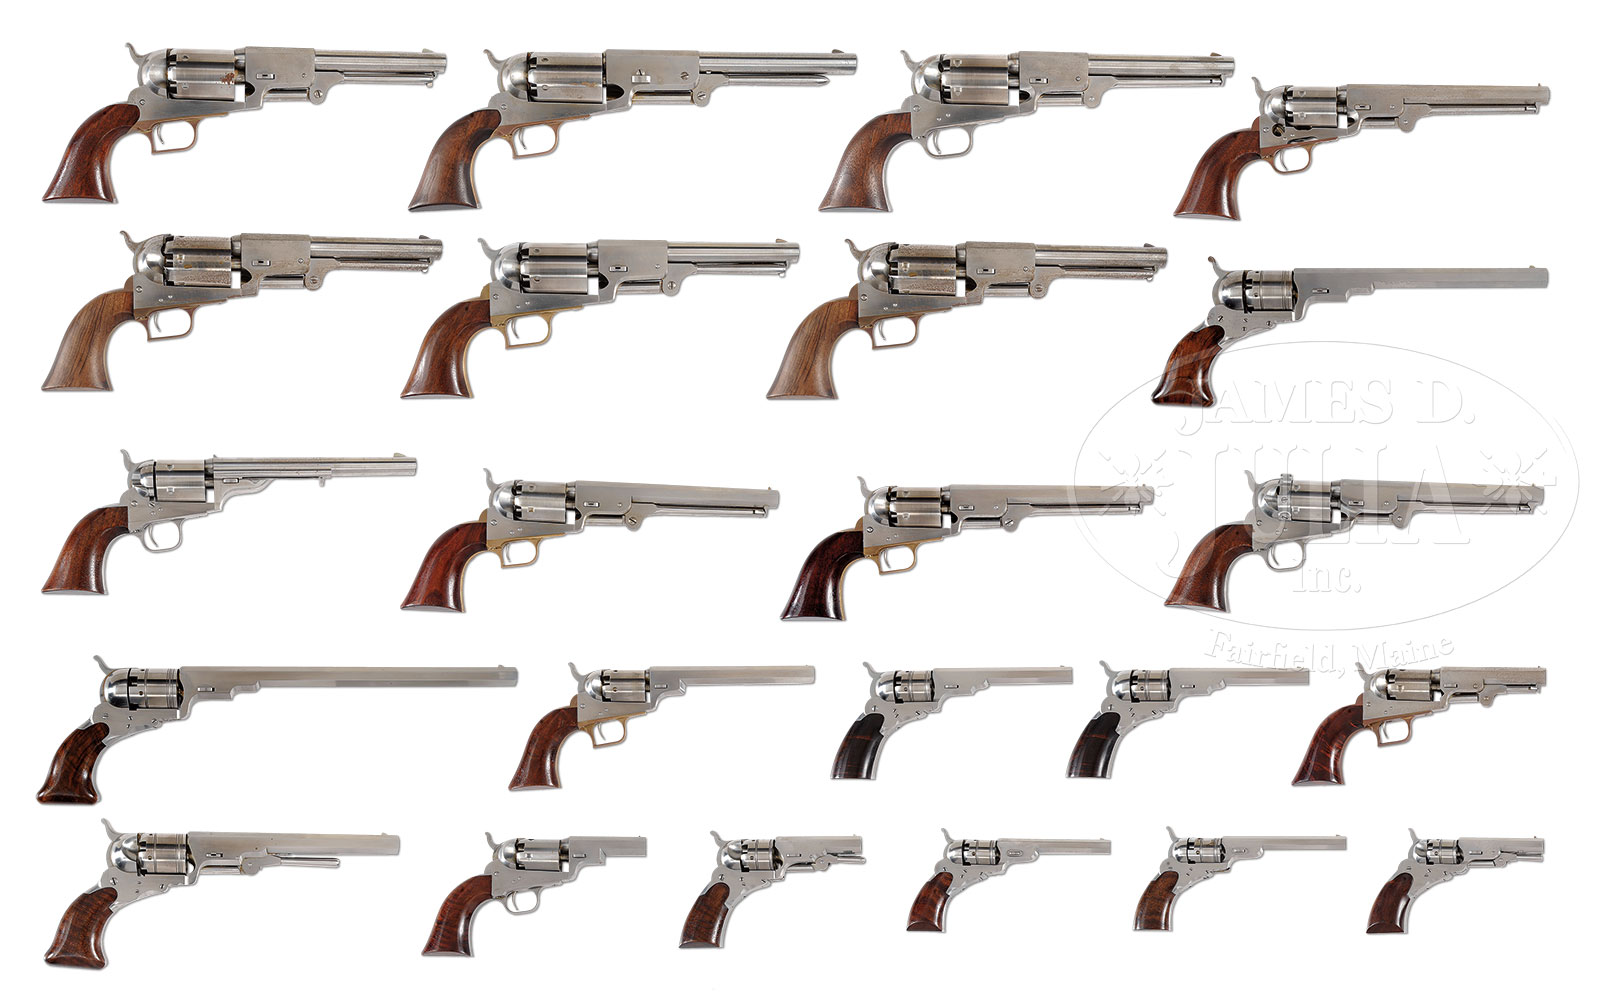 INCREDIBLE COLLECTION OF REPRODUCTION COLT REVOLVERS